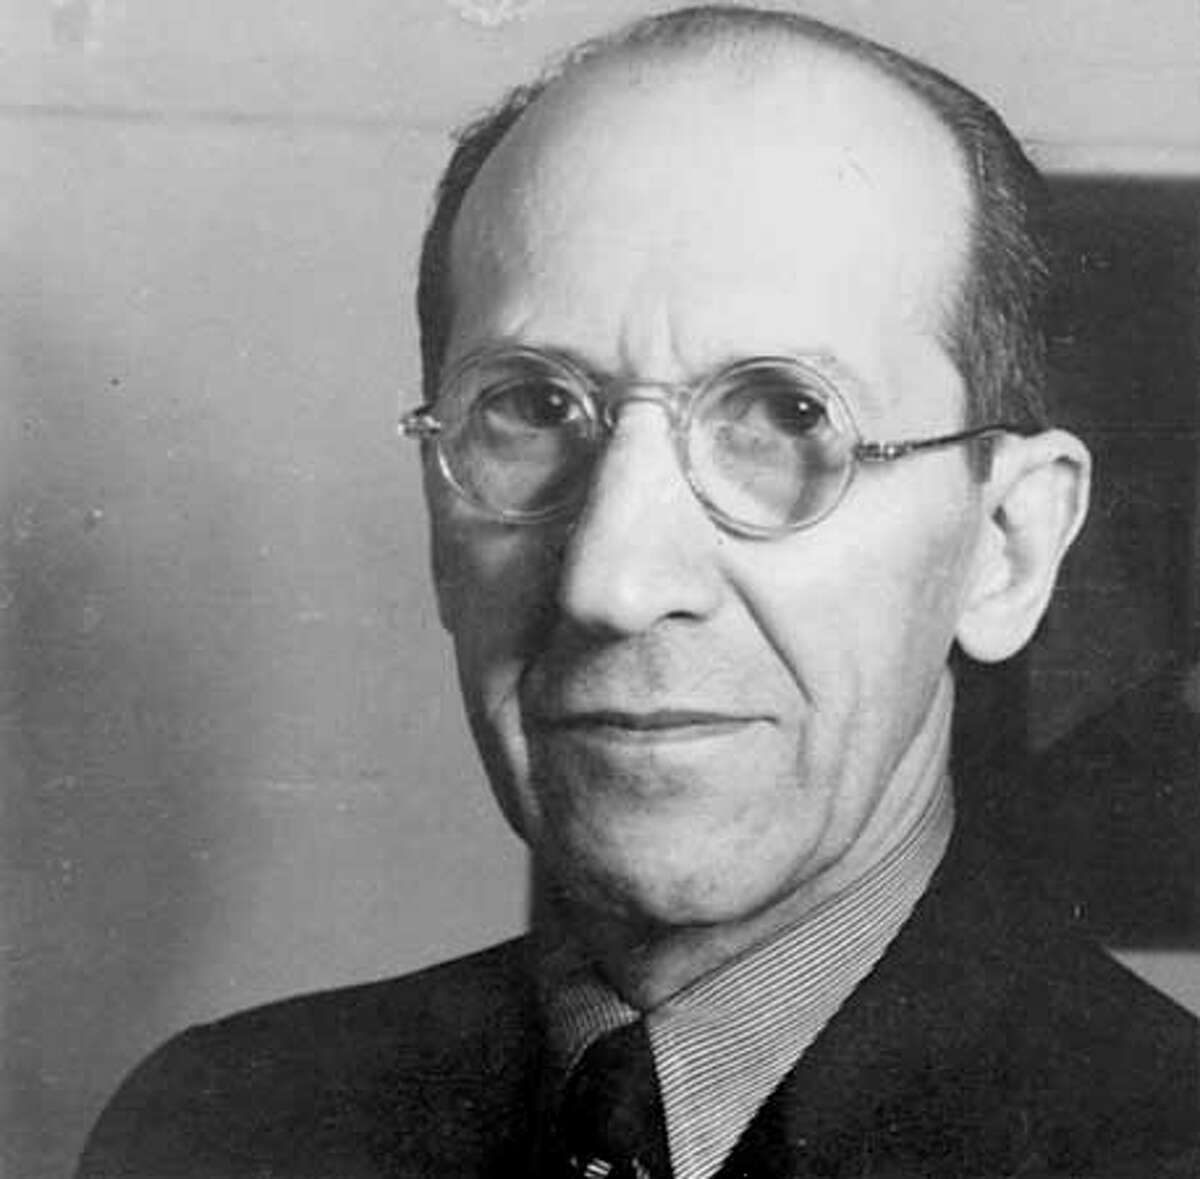 Piet Mondrian (1987-1944): The artist thought he could devise abstract compositions that would have a recognizable, if not objective, aesthetic primacy